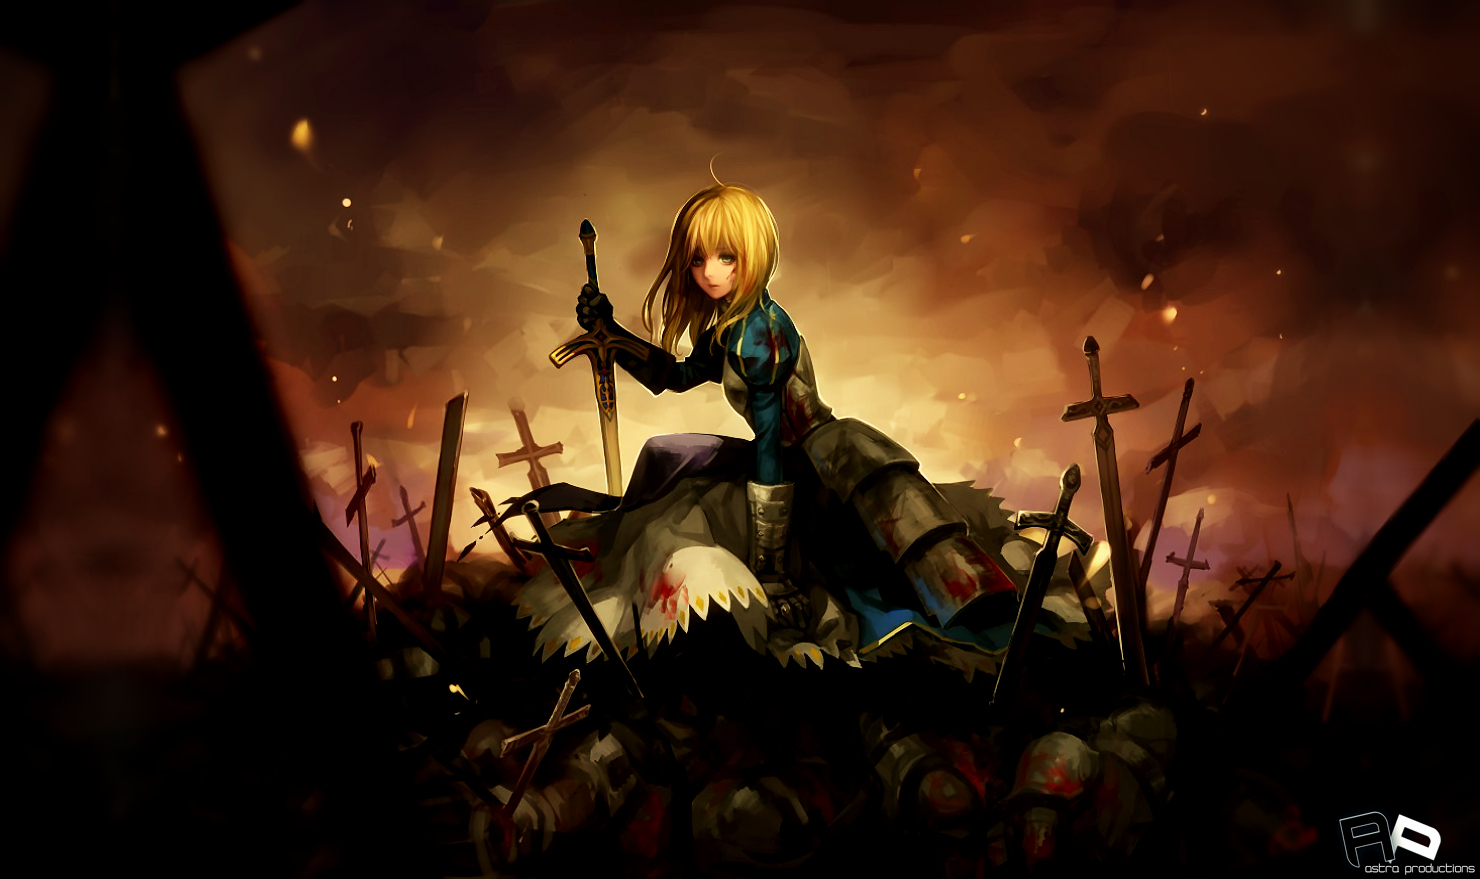 FateZero Computer Wallpapers Desktop Backgrounds 1480x879 ID